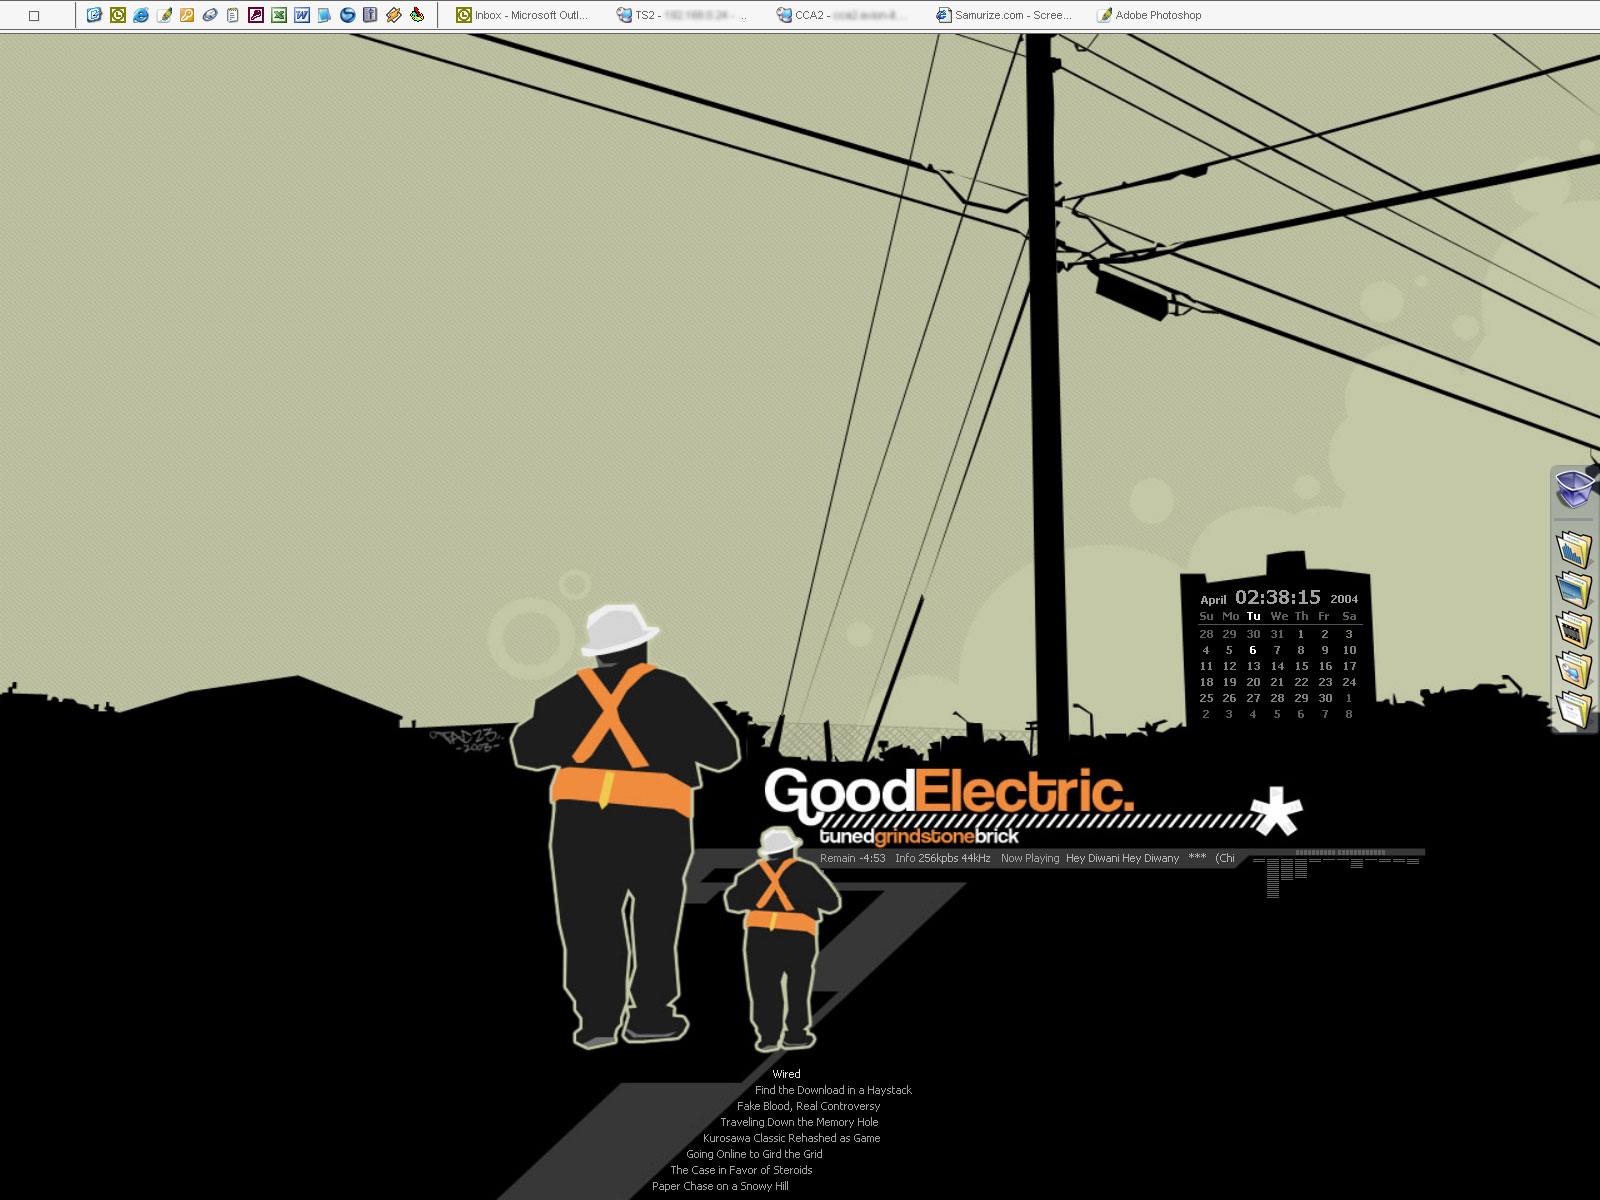 Title: Good Electric